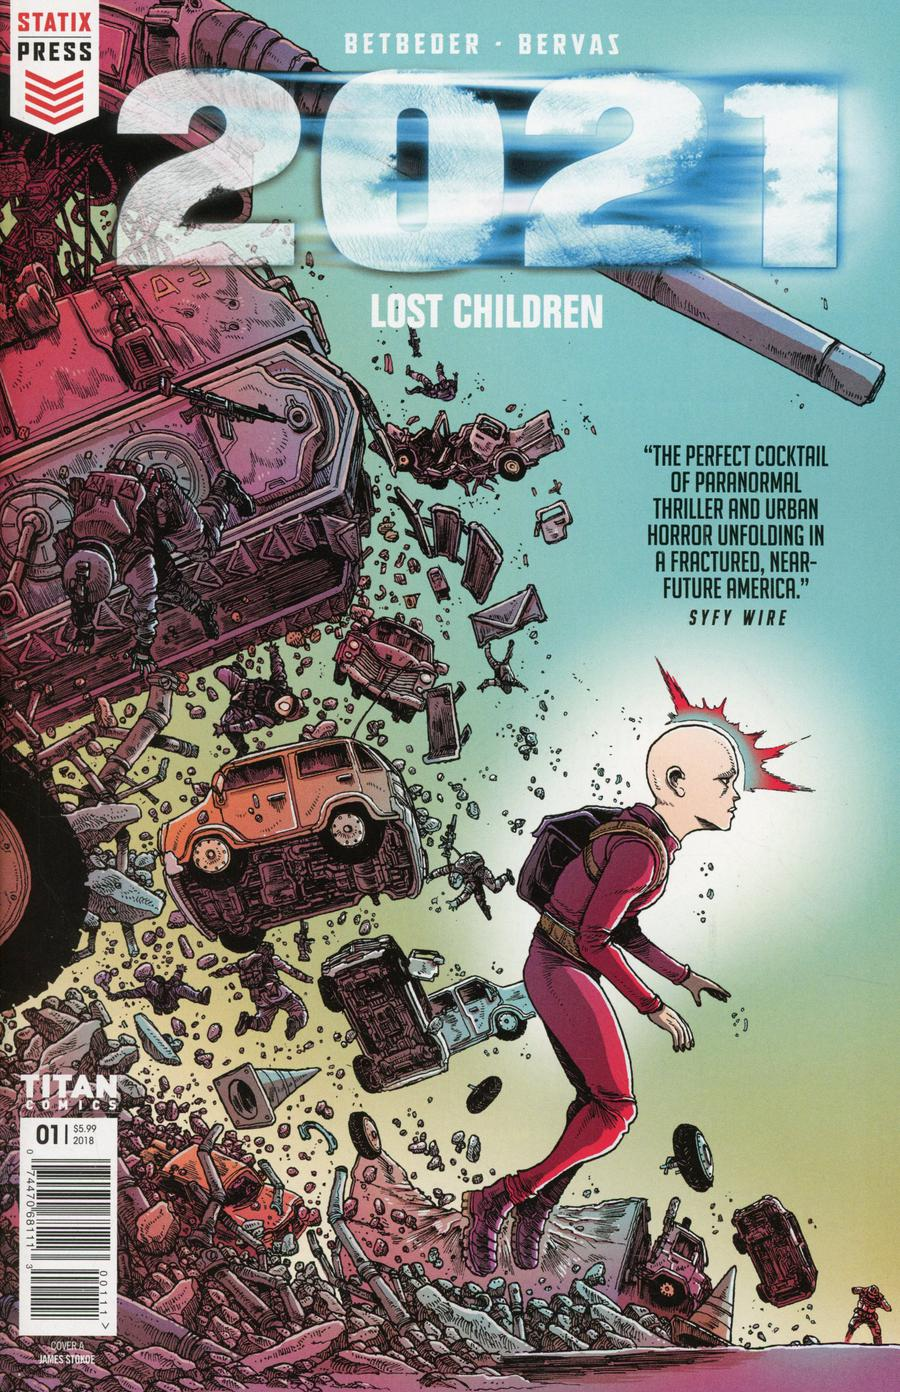 2021 Lost Children #1 Cover A Regular James Stokoe Color Cover